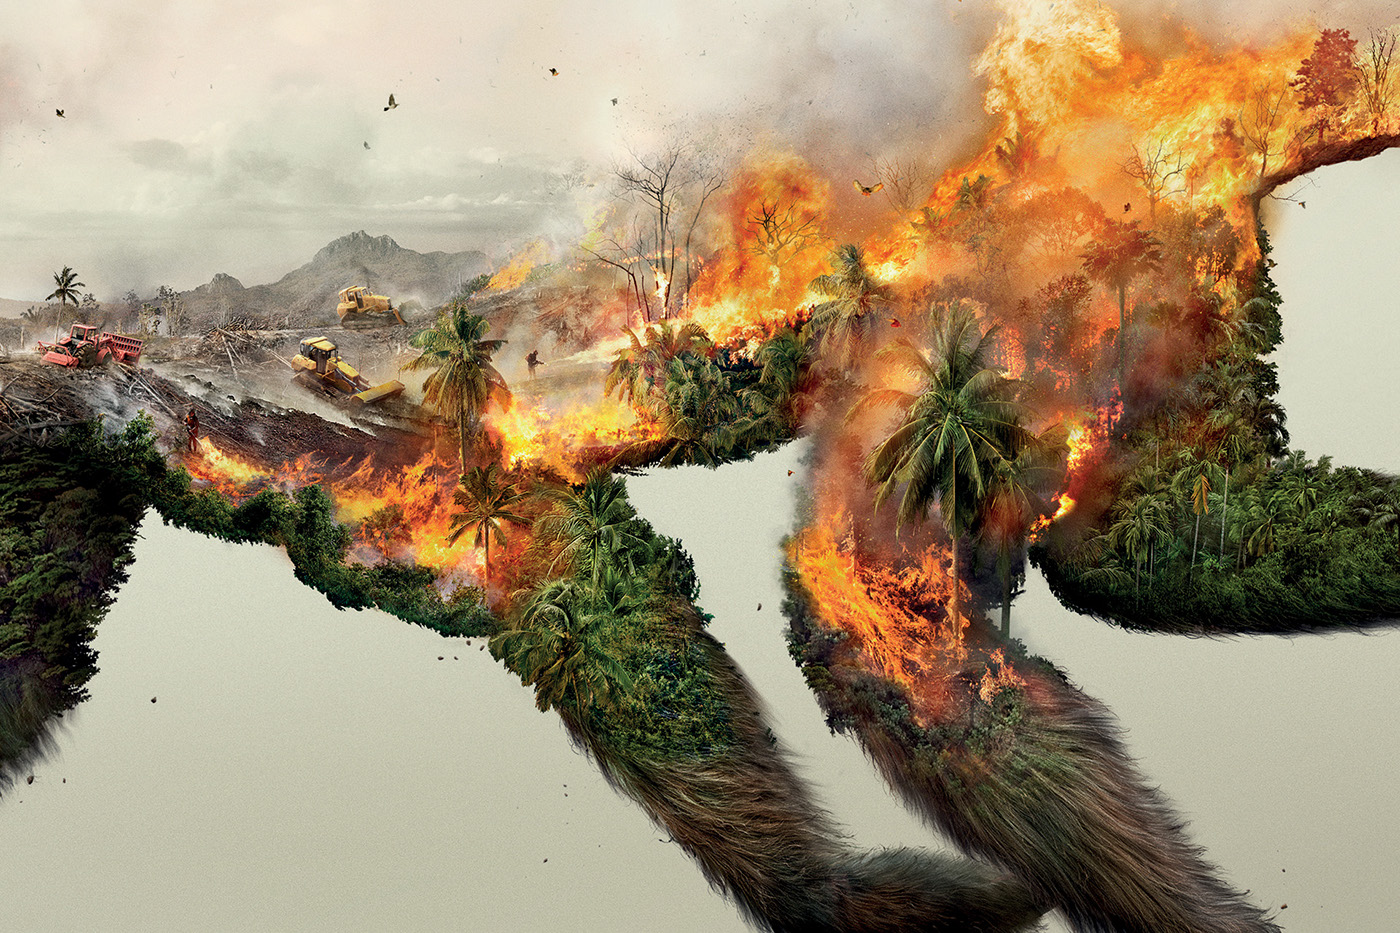 Destroying nature is destroying life robin wood